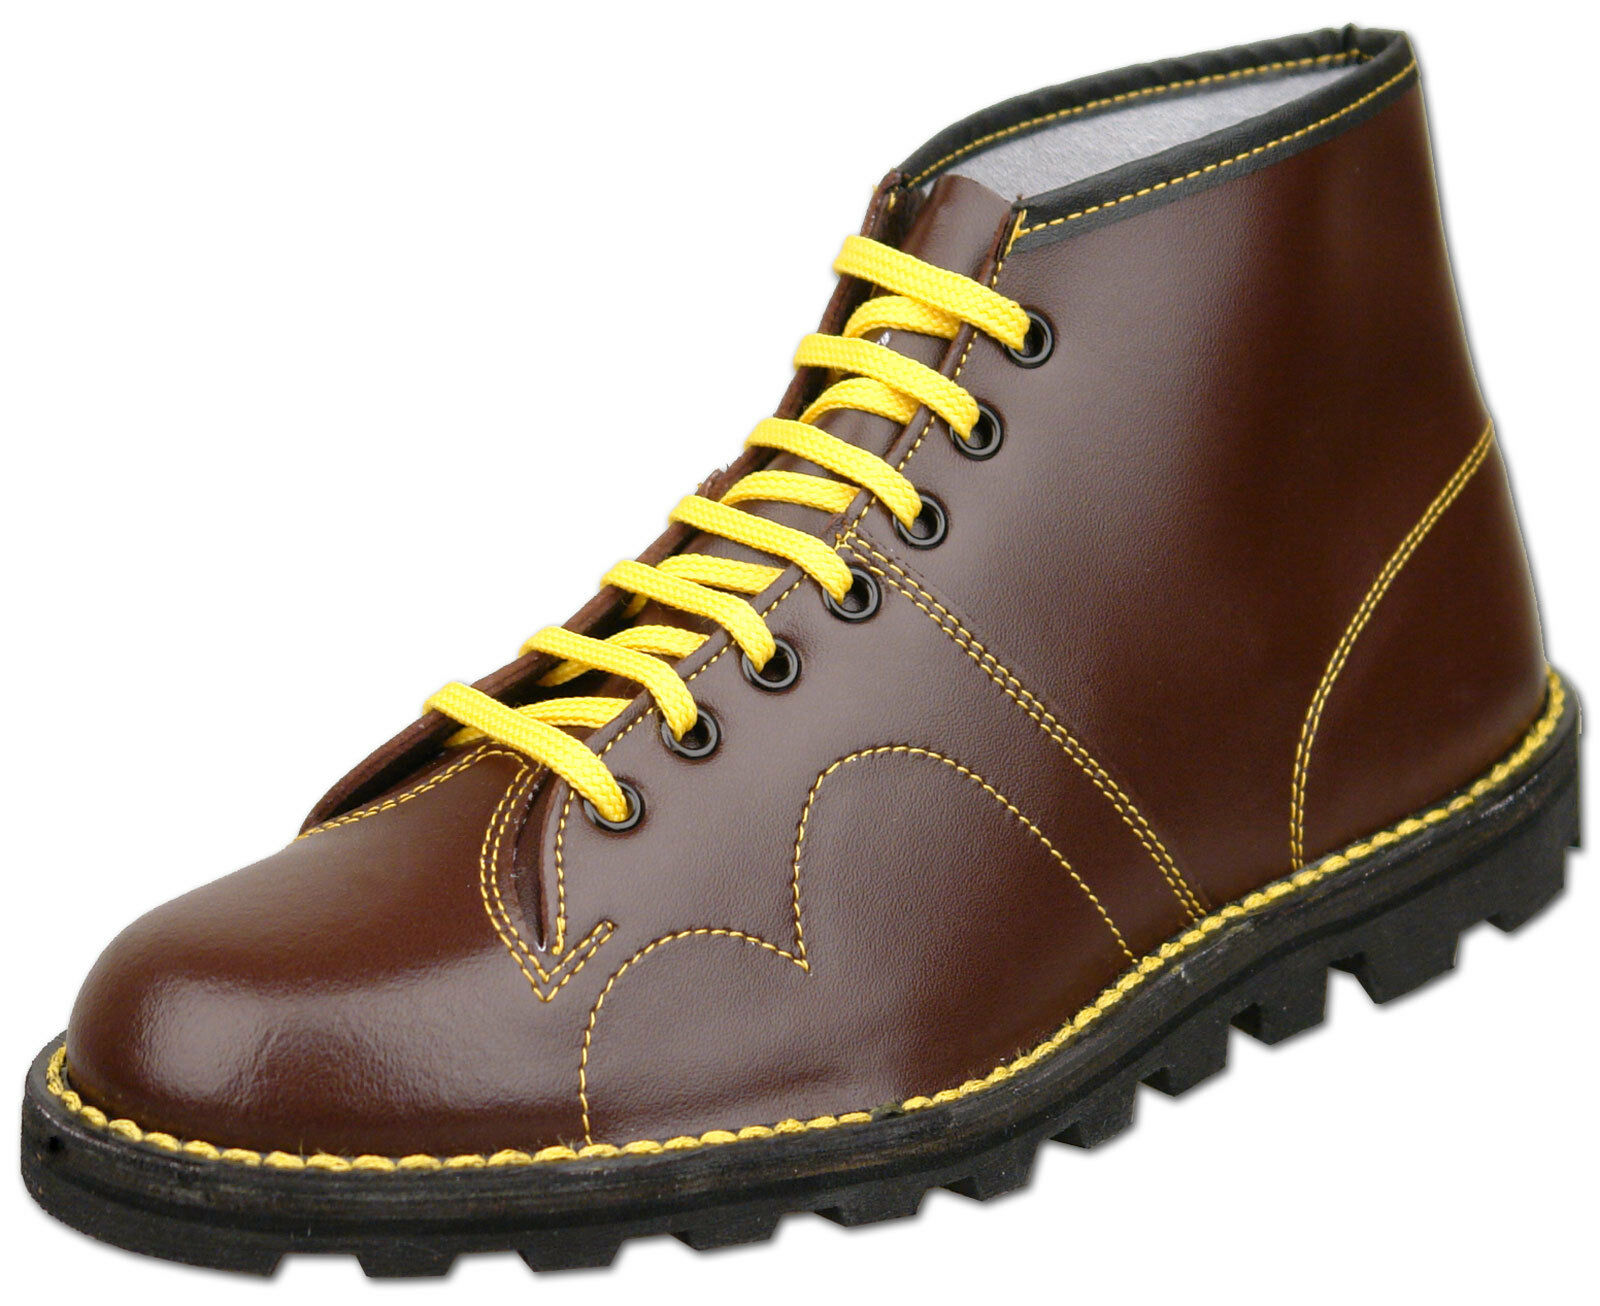 Mens New Lace Up Wine Leather Original Monkey Ankle Boots Size 6 7 8 9 10 11 12